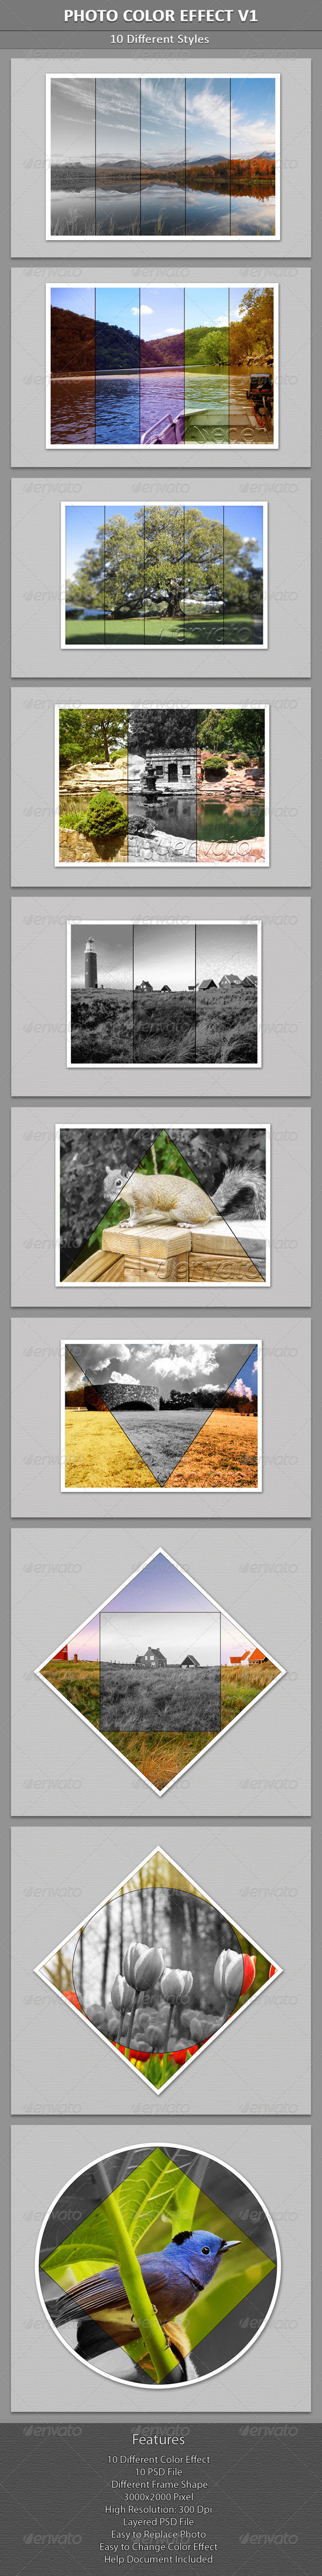 GraphicRiver Photo Color Effect V1 5771148